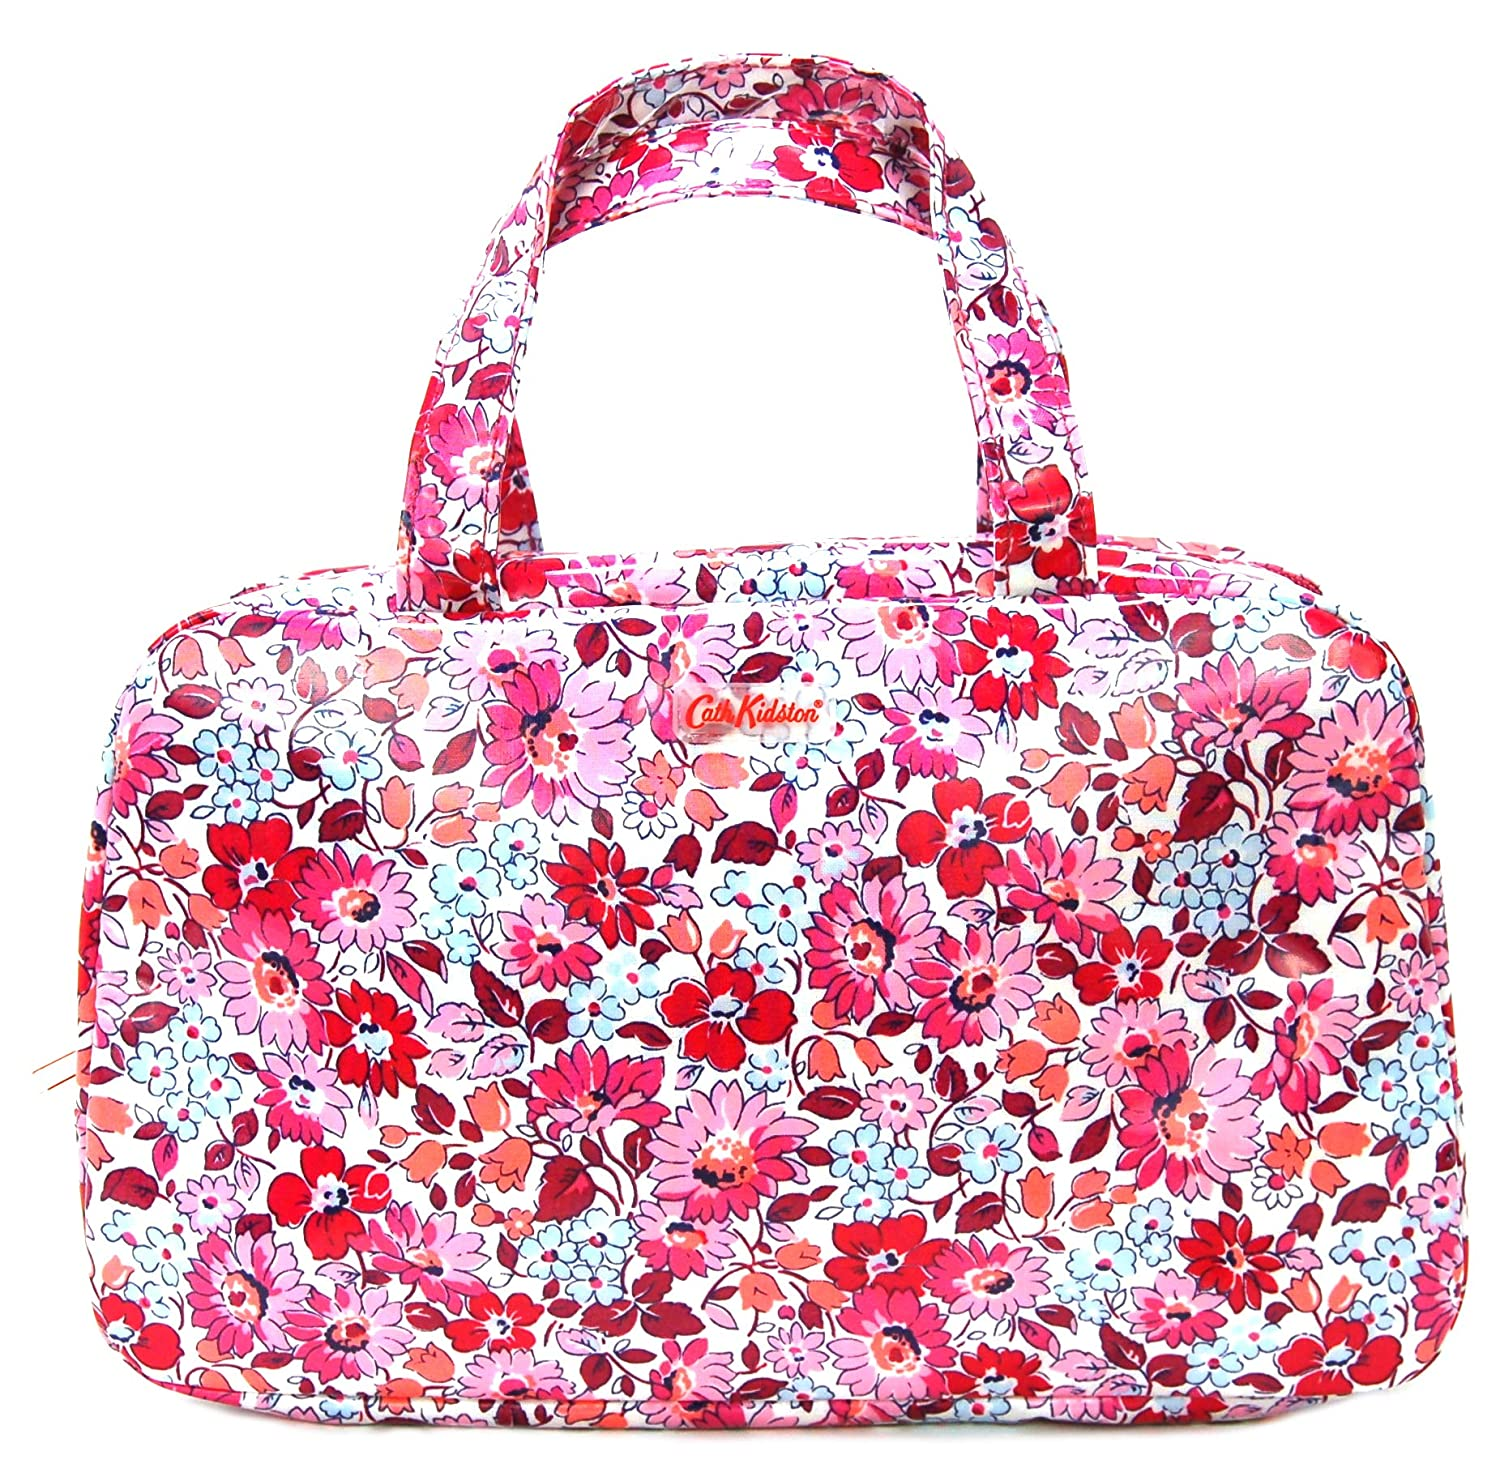 Cath Kidston Large Wash Bag Toiletry Bag with Handles in 'Welham Flowers Design in Cerise Oilcloth